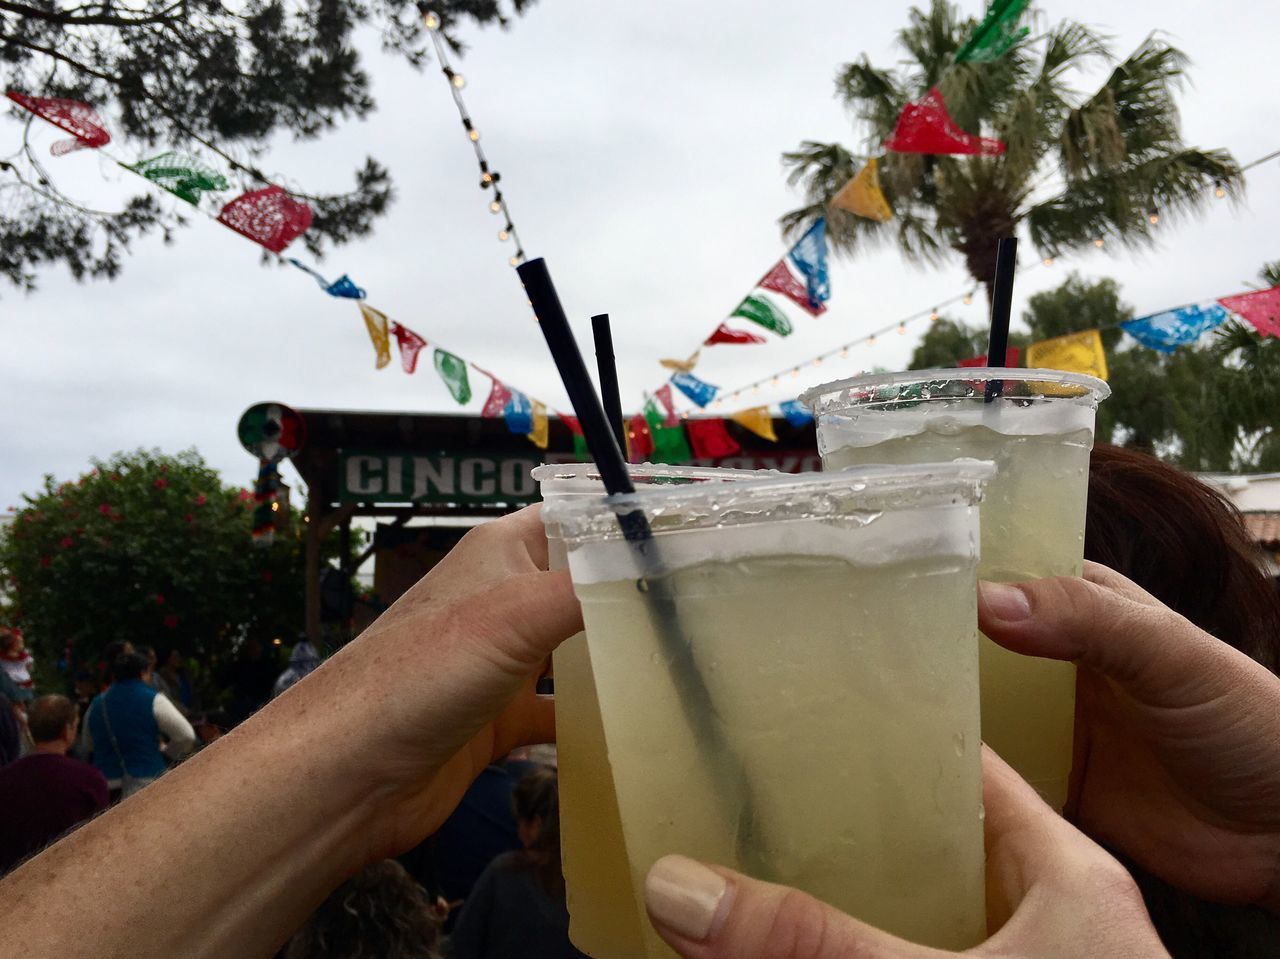 Cinco de mayo celebration with margaritas Human Hand Human Body Part Drink Real People Food And Drink Drinking Straw Holding Men Refreshment Leisure Activity Tree Lifestyles Day Drinking Glass Sky Focus On Foreground Outdoors Women Alcohol One Person Cinco De Mayo Margaritas Visual Feast